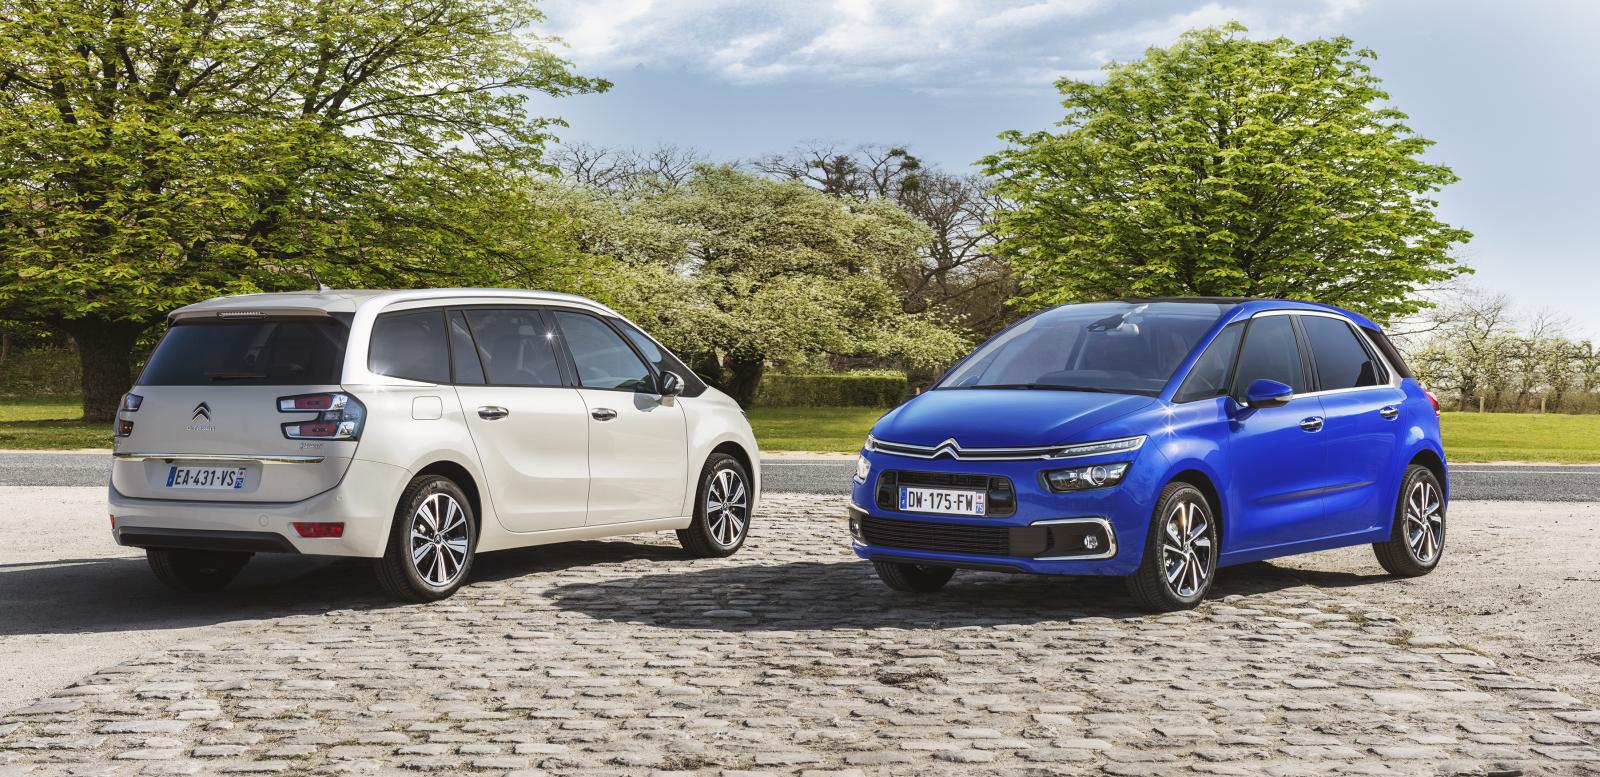 Grand C4 Picasso Shine του 2016 και C4 Picasso του 2016